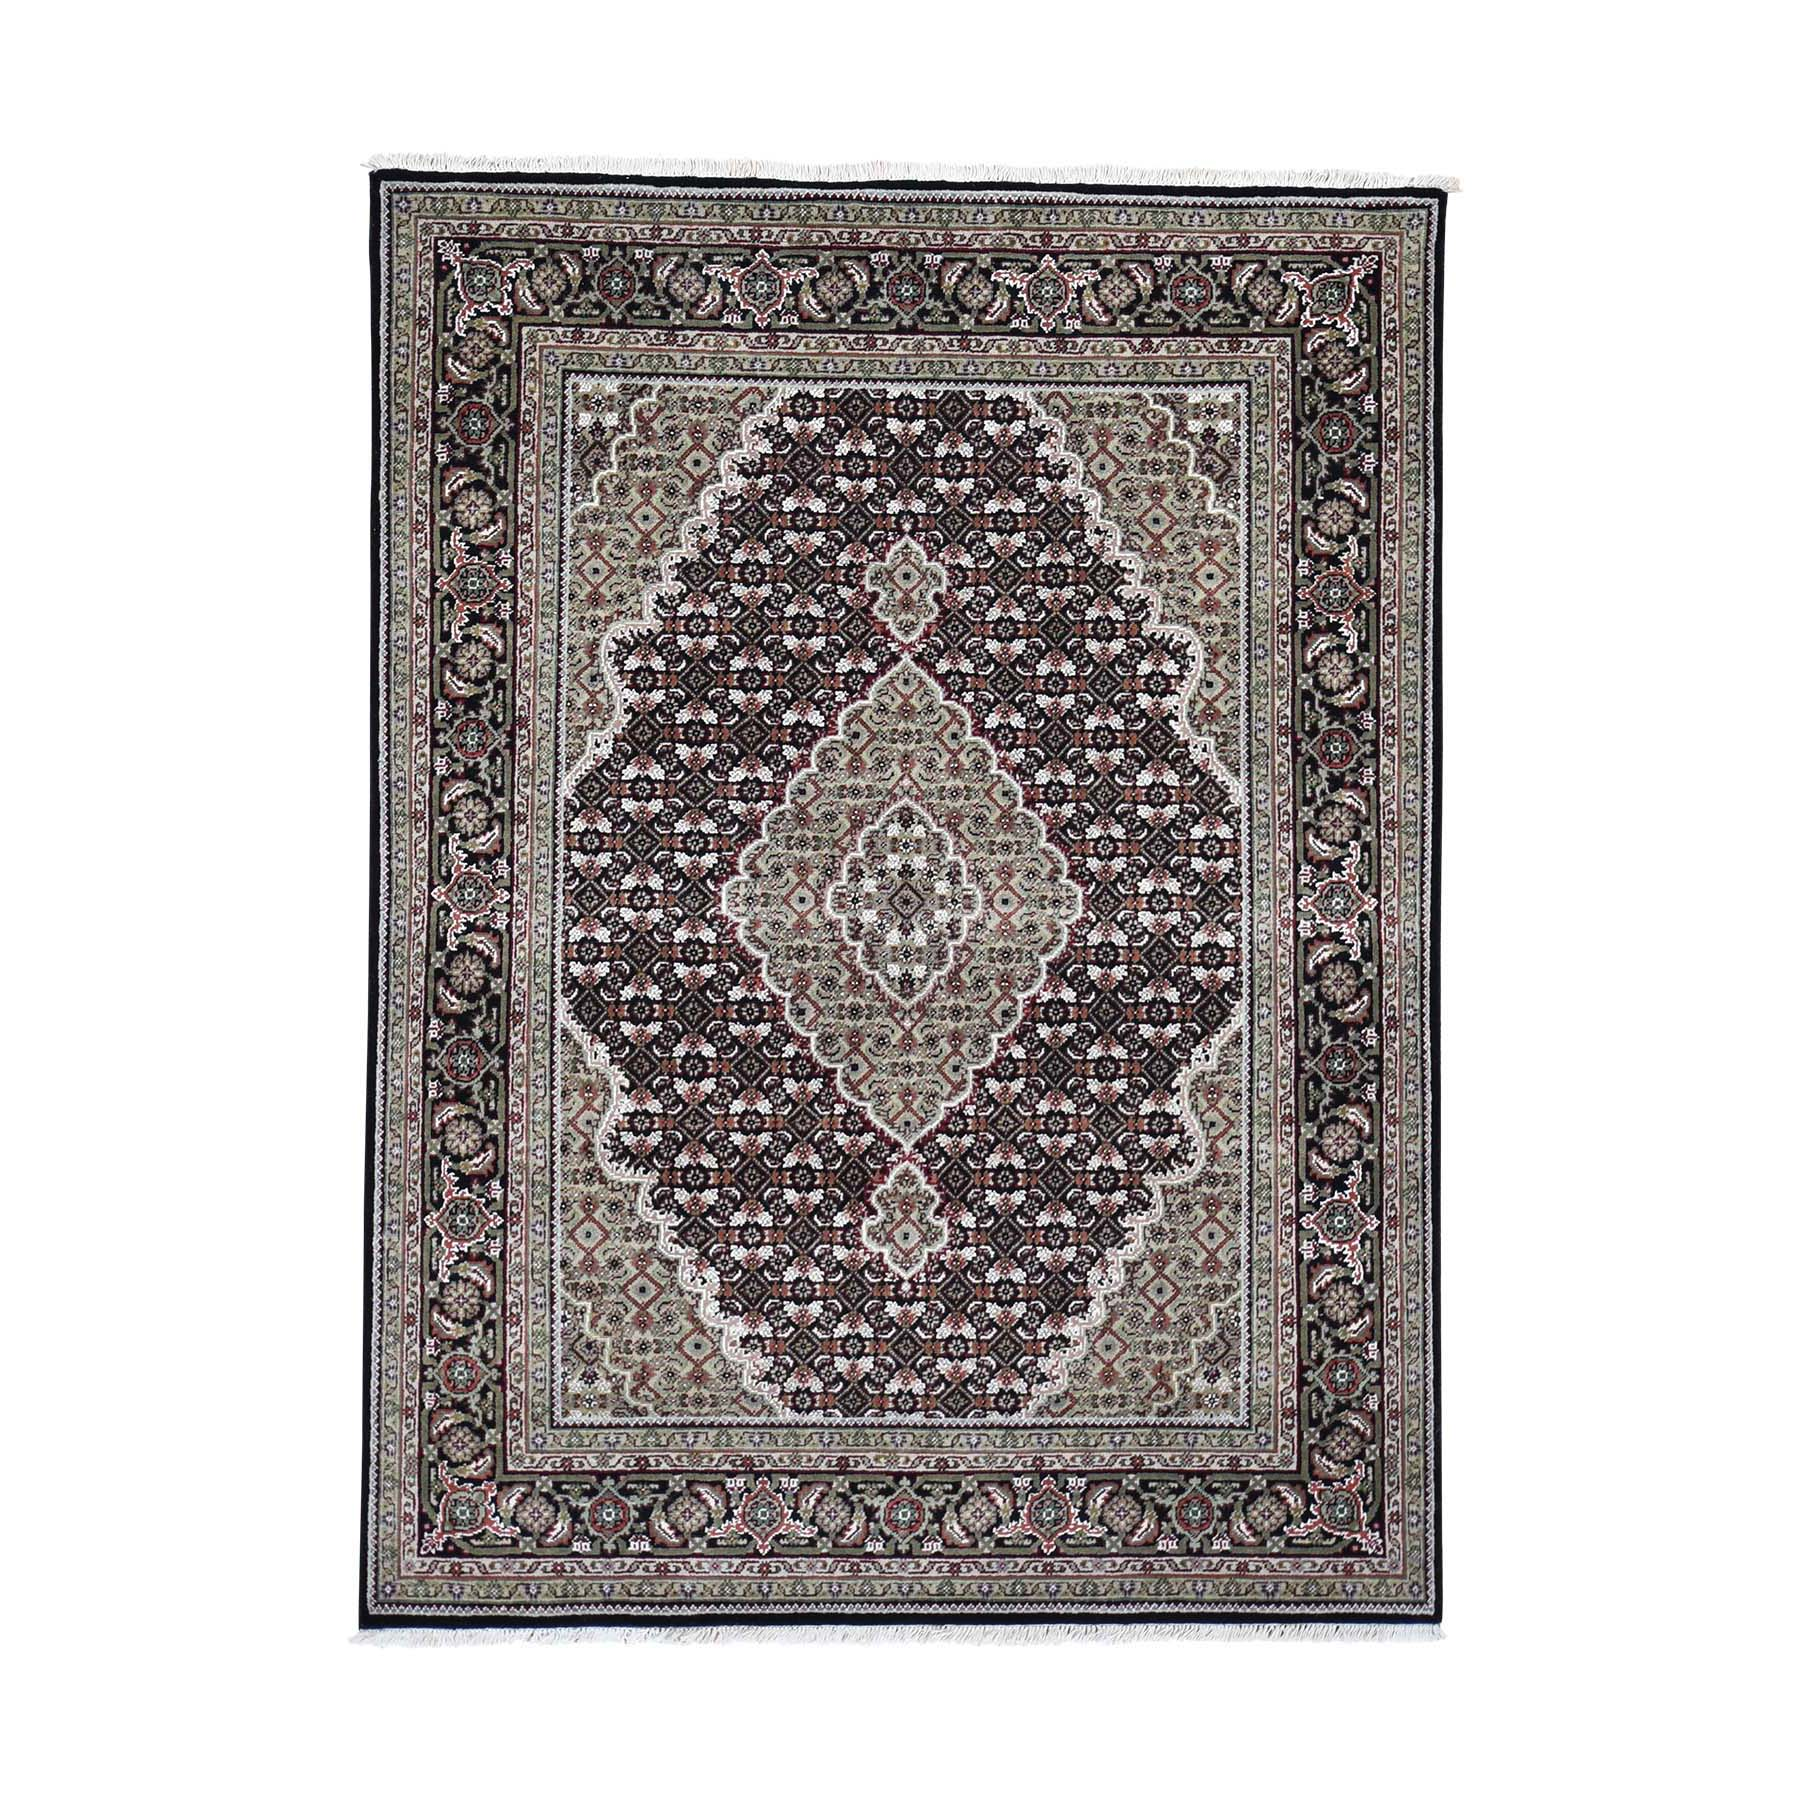 "5'X6'8"" Black Tabriz Mahi Wool And Silk Hand-Knotted Oriental Rug moad6dac"